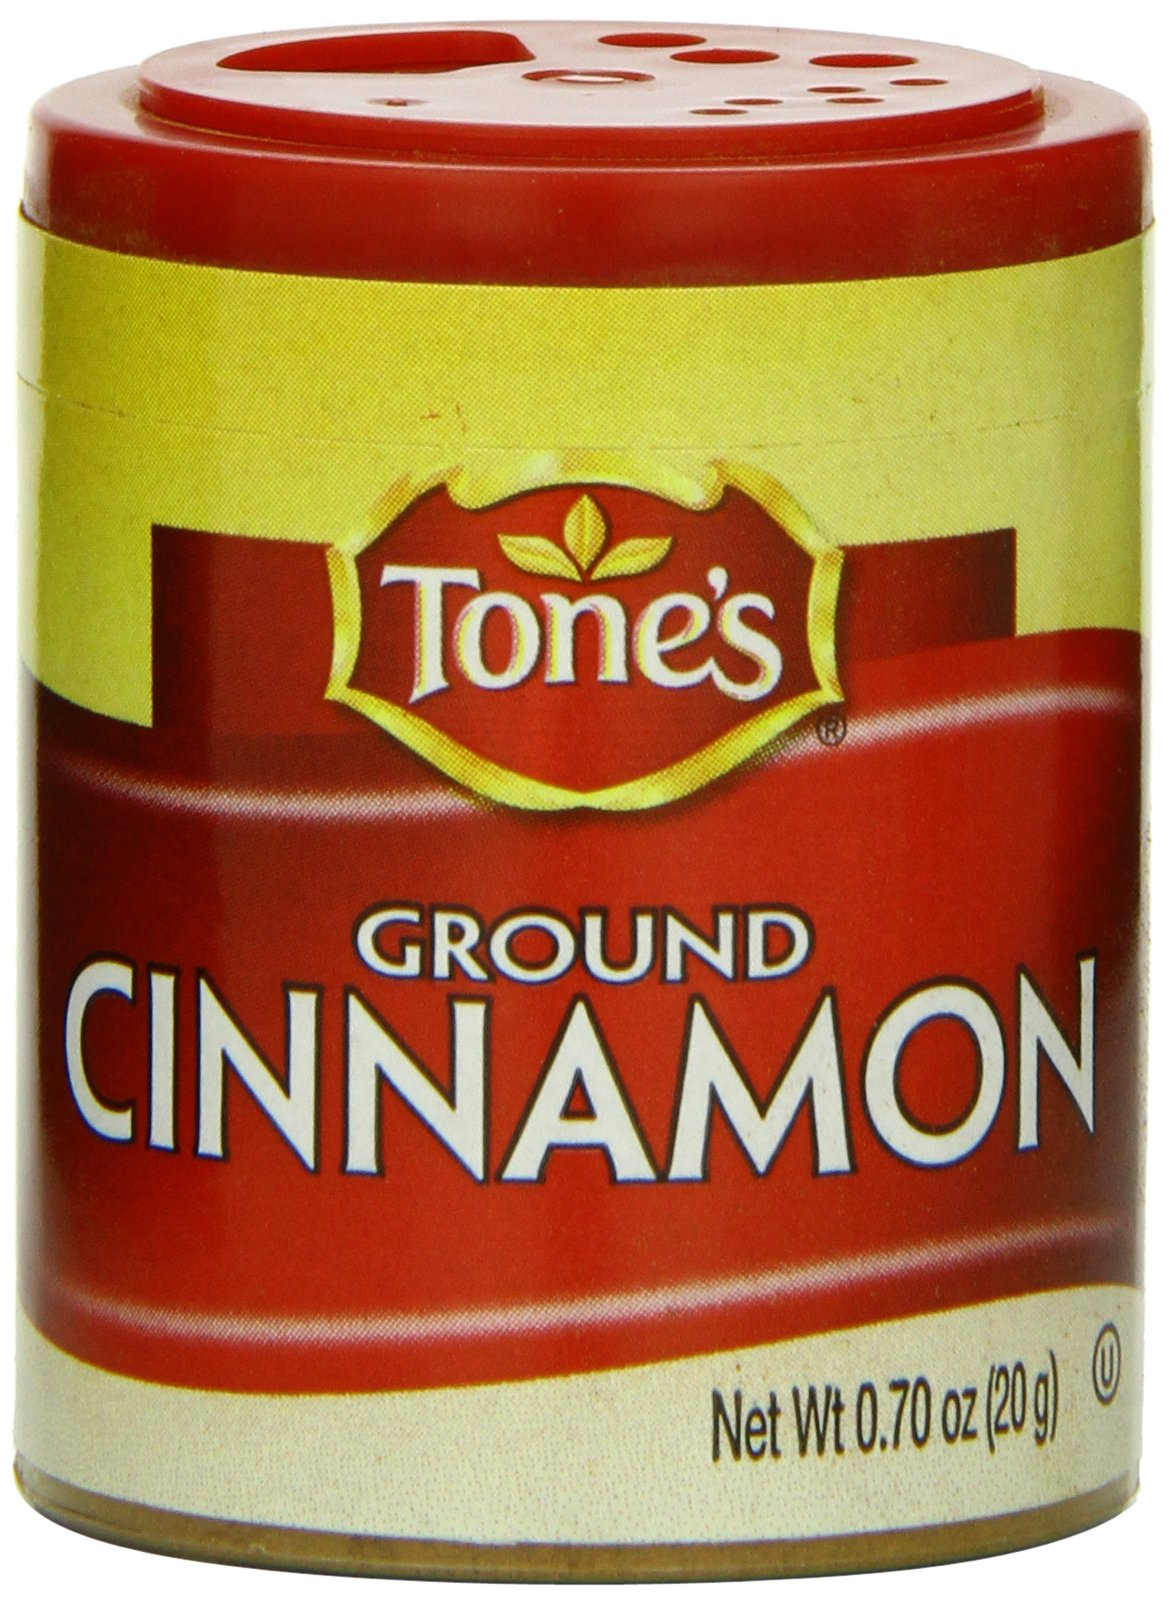 Tone's Mini's Cinnamon, Ground, 0.70 Ounce (Pack of 6)